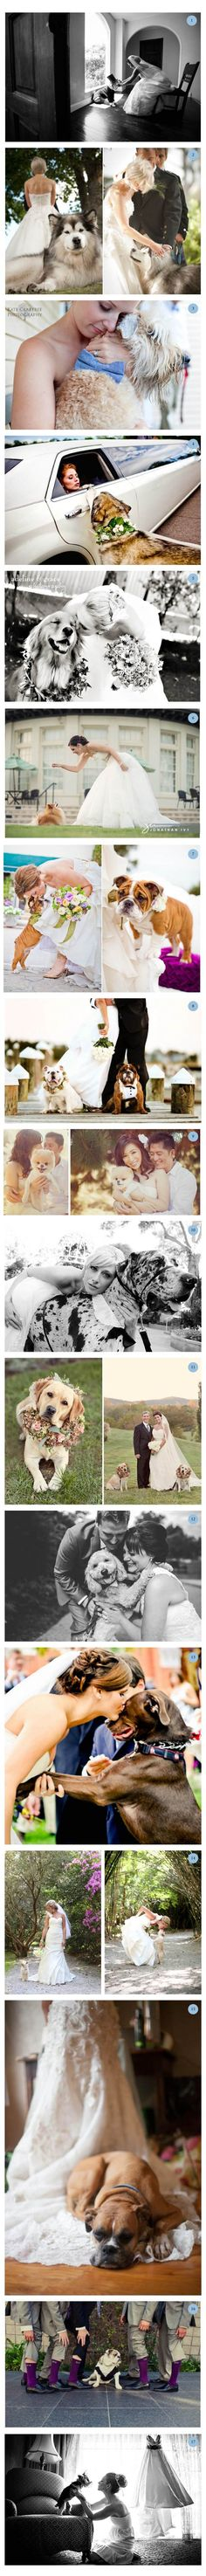 Having your puppies on your wedding day!